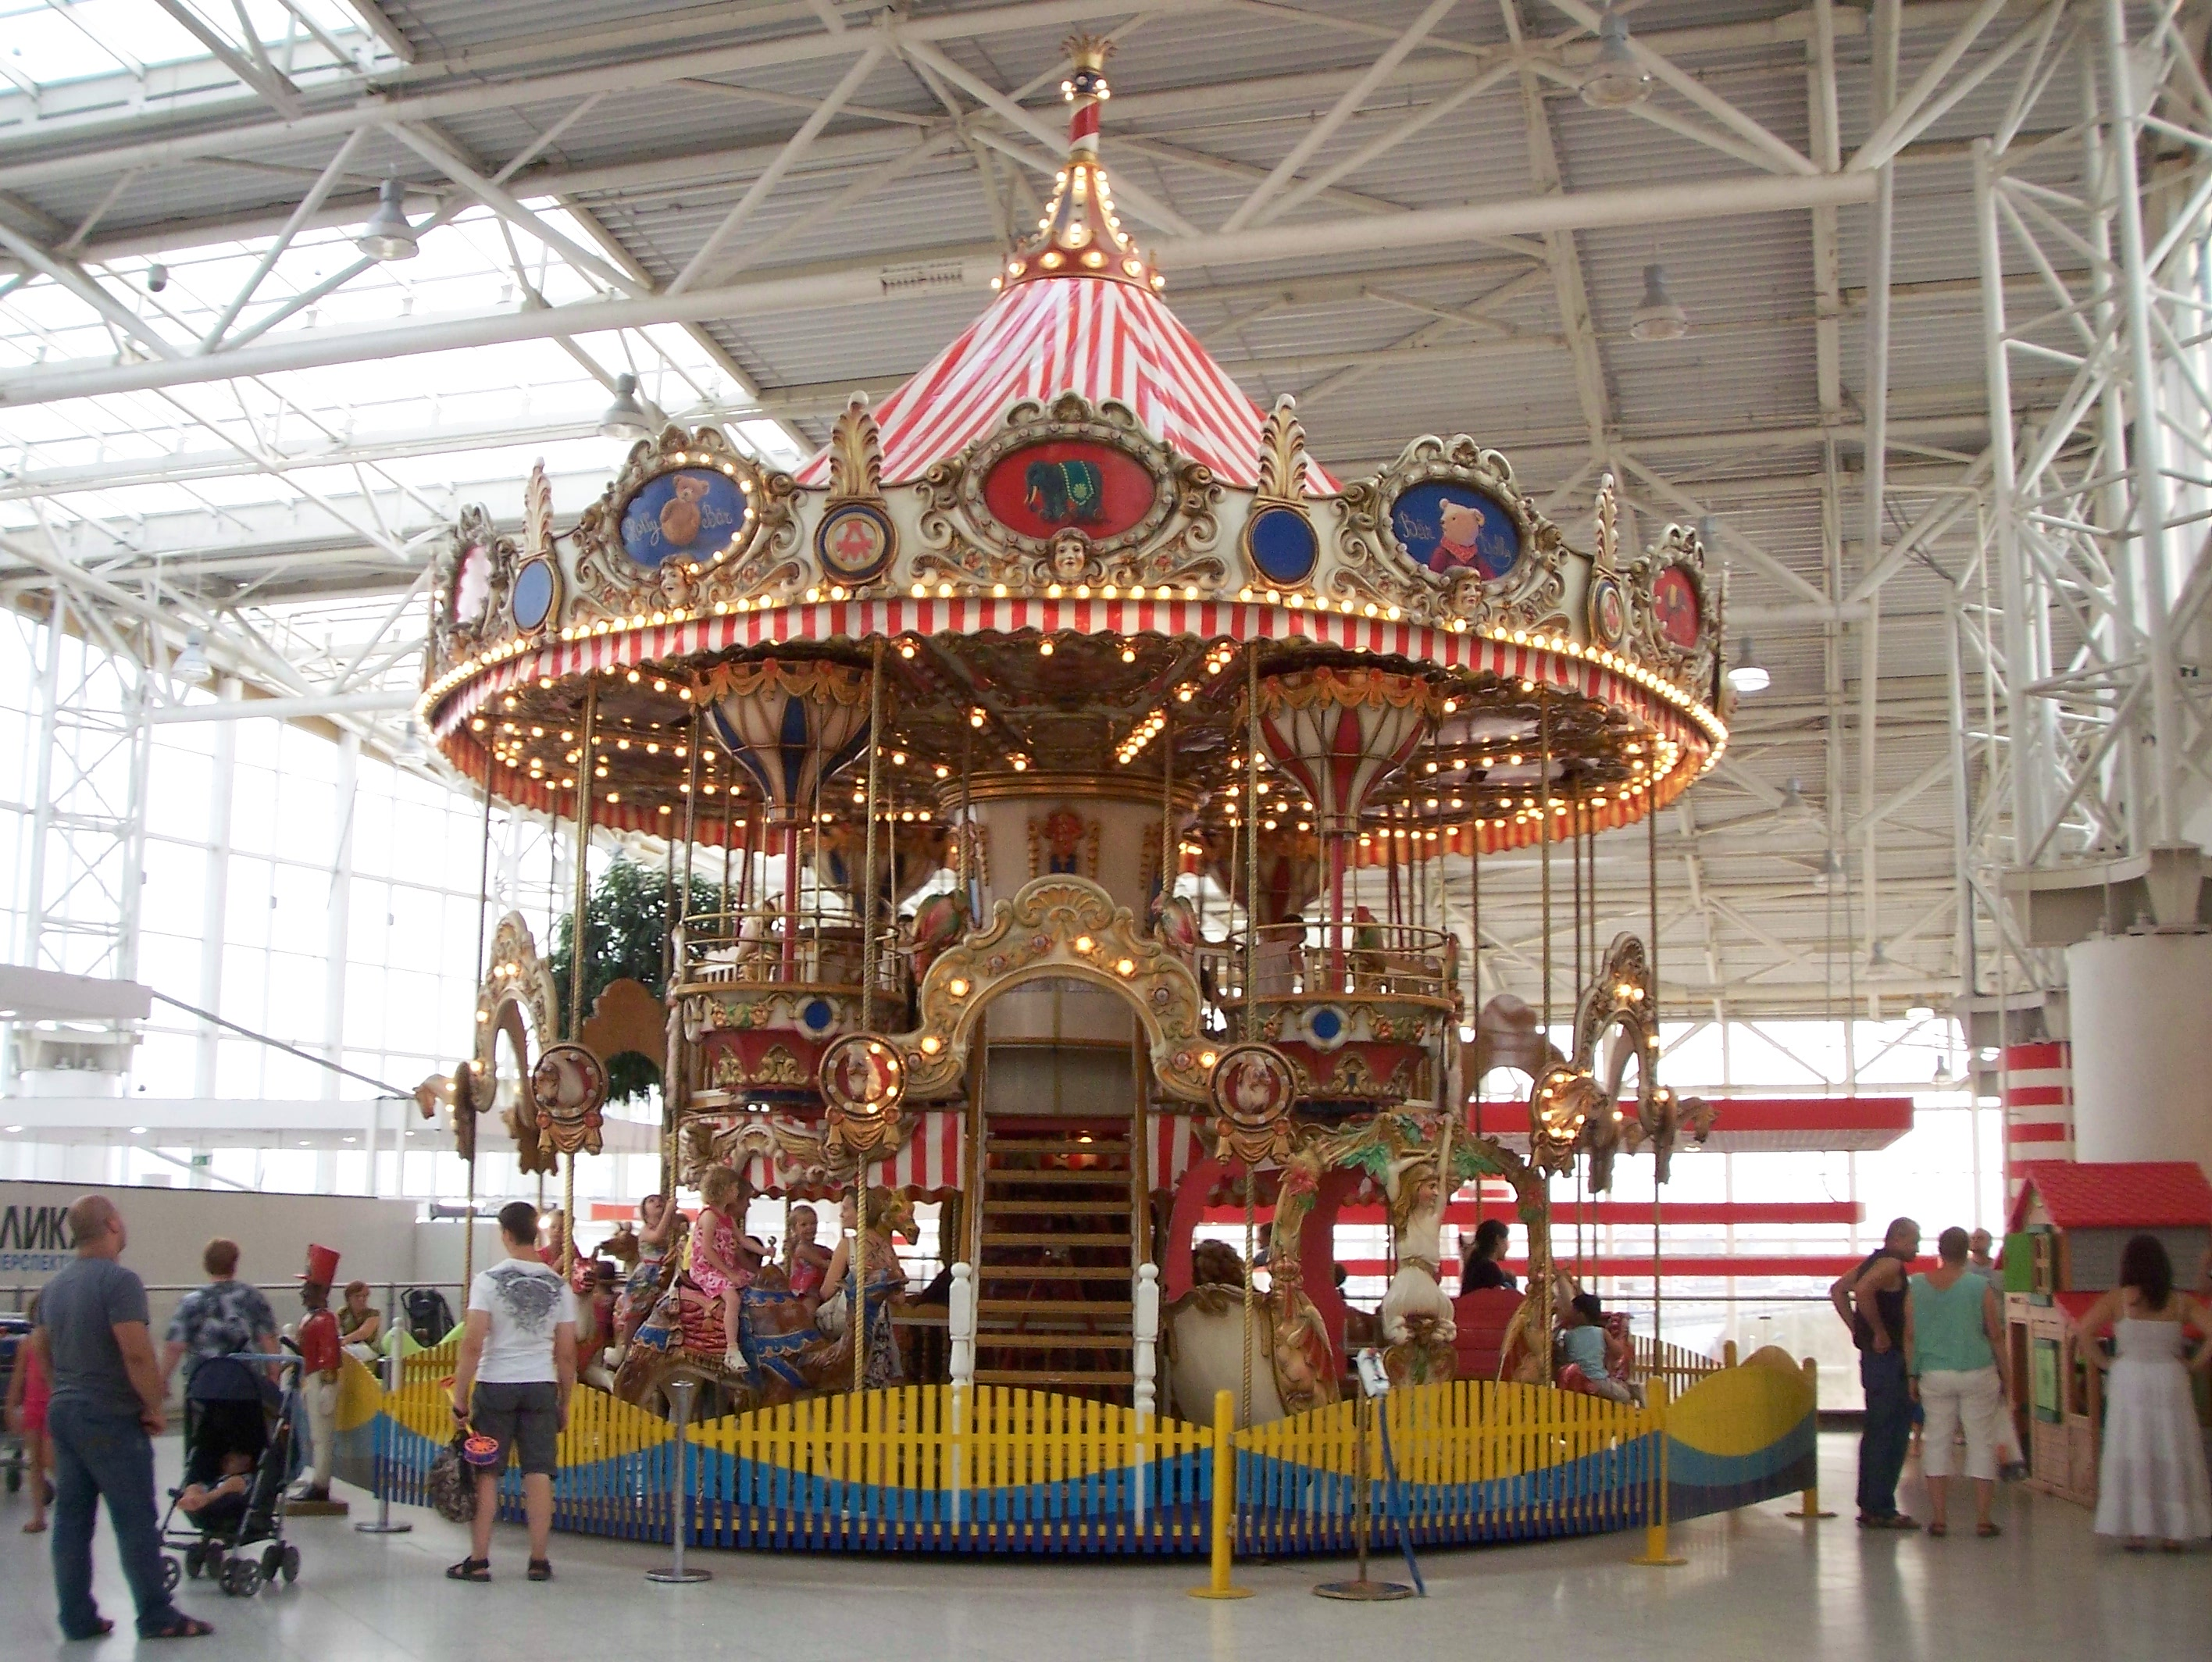 We Found The Carousel From The Old Toy Store… | Russian Photo Blog…